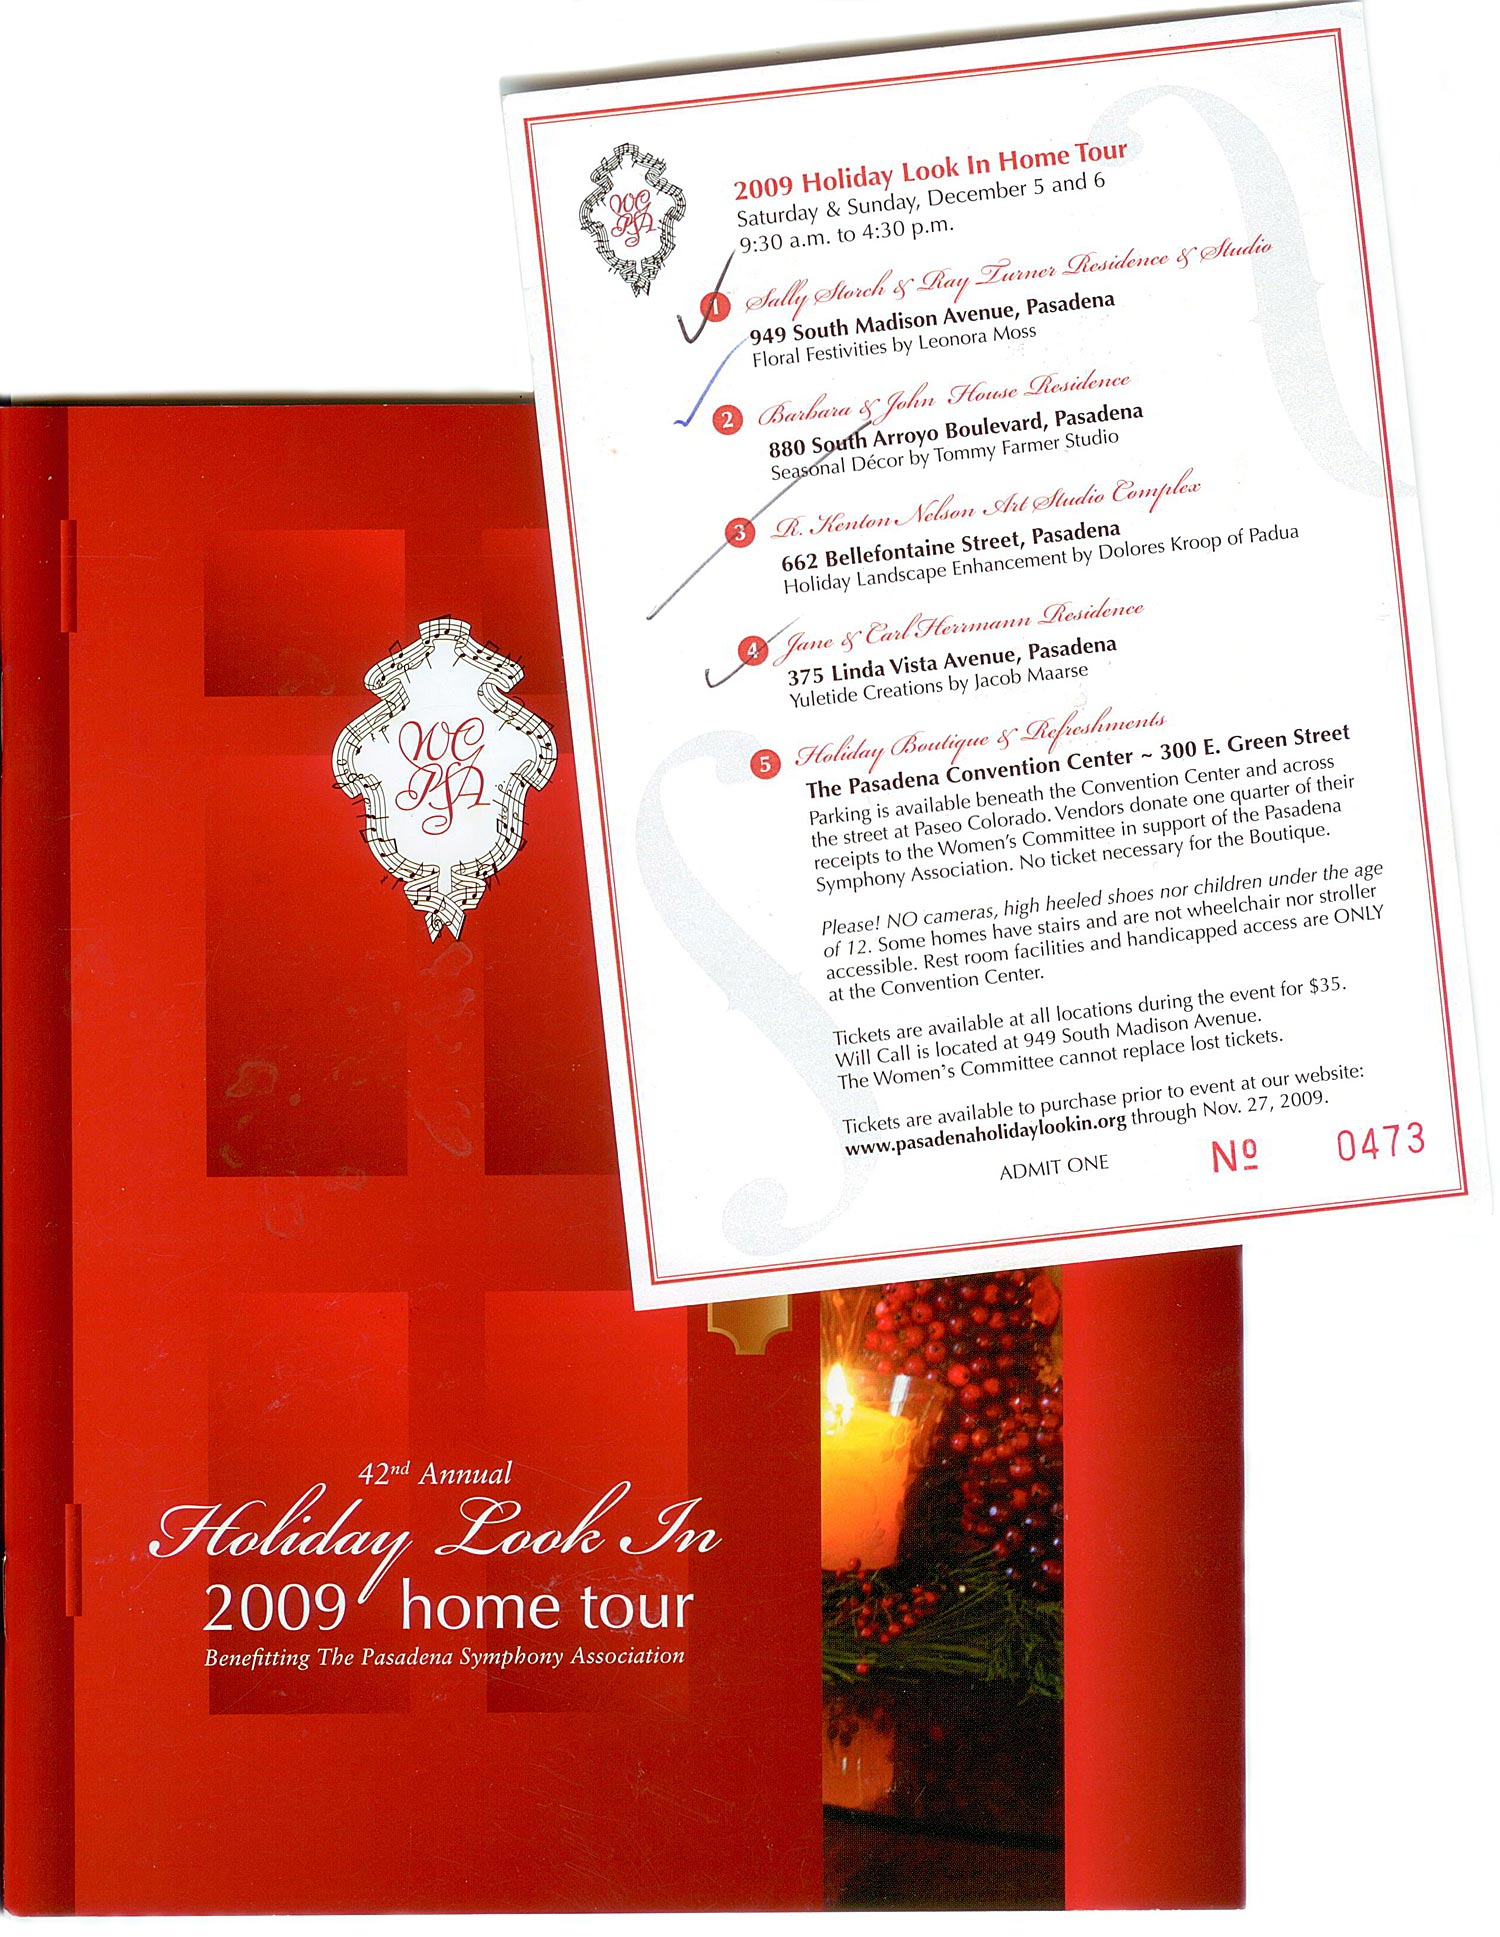 Home Tour Program and Ticket